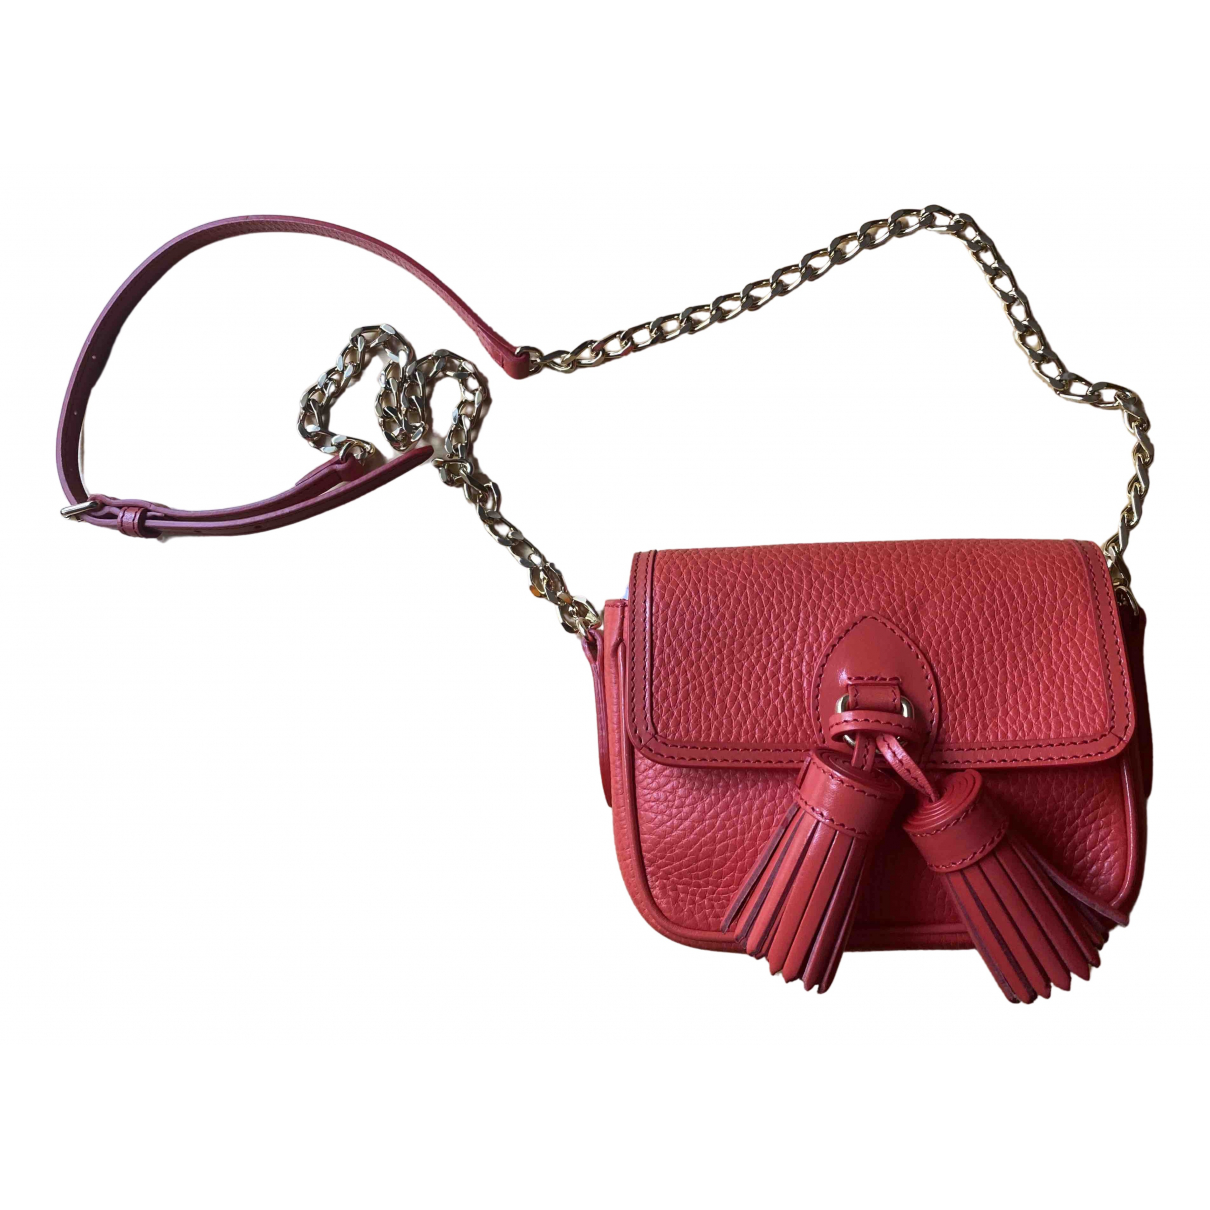 Burberry \N Red Leather Clutch bag for Women \N